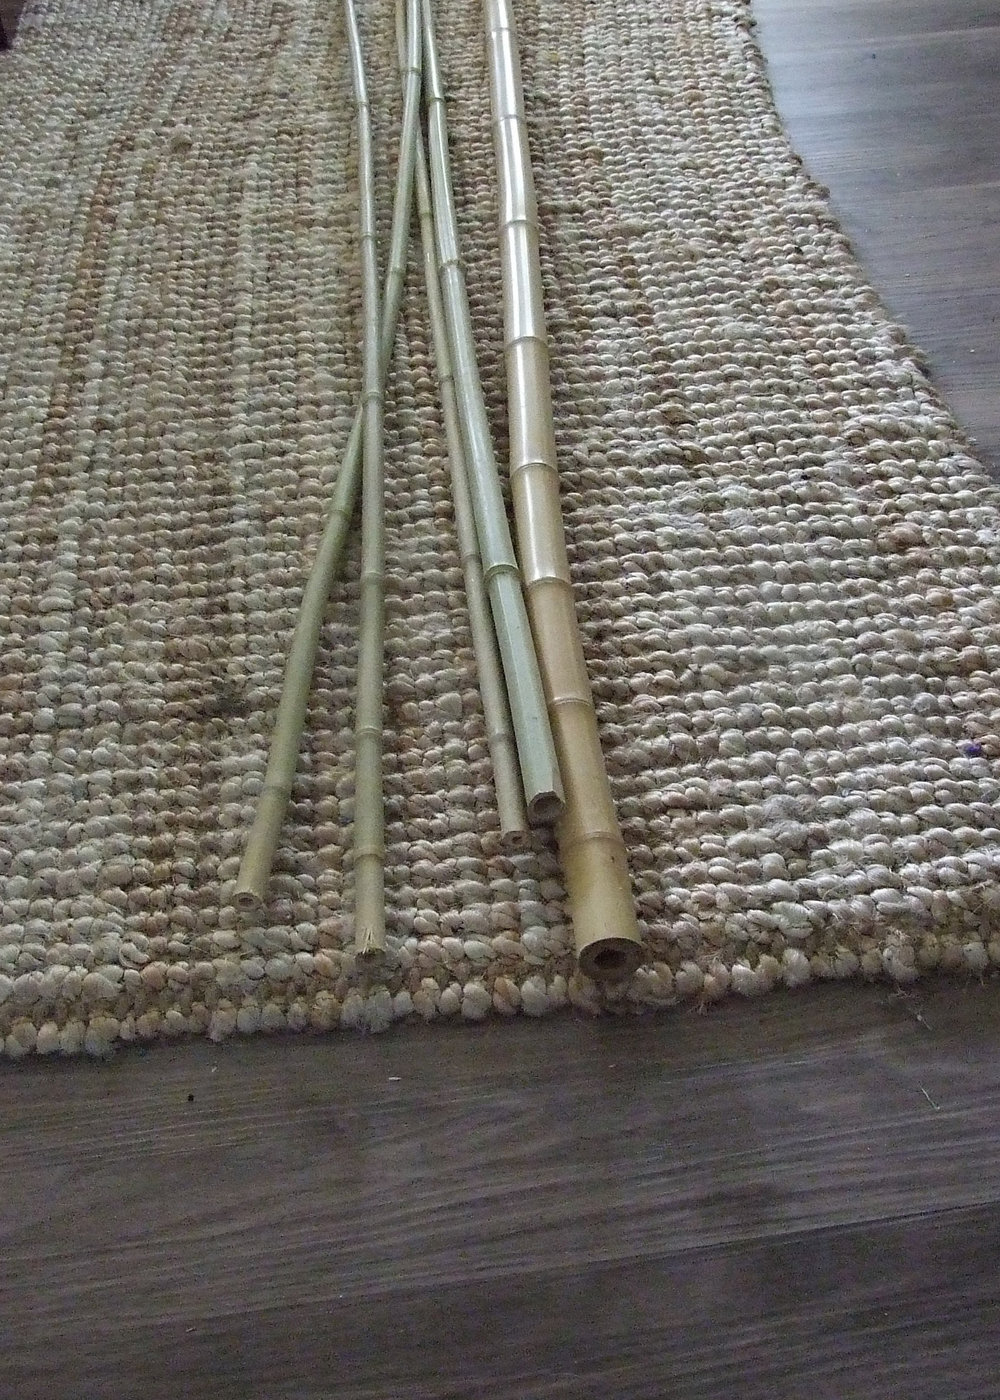 lengths of 1cm and 2cm bamboo poles.